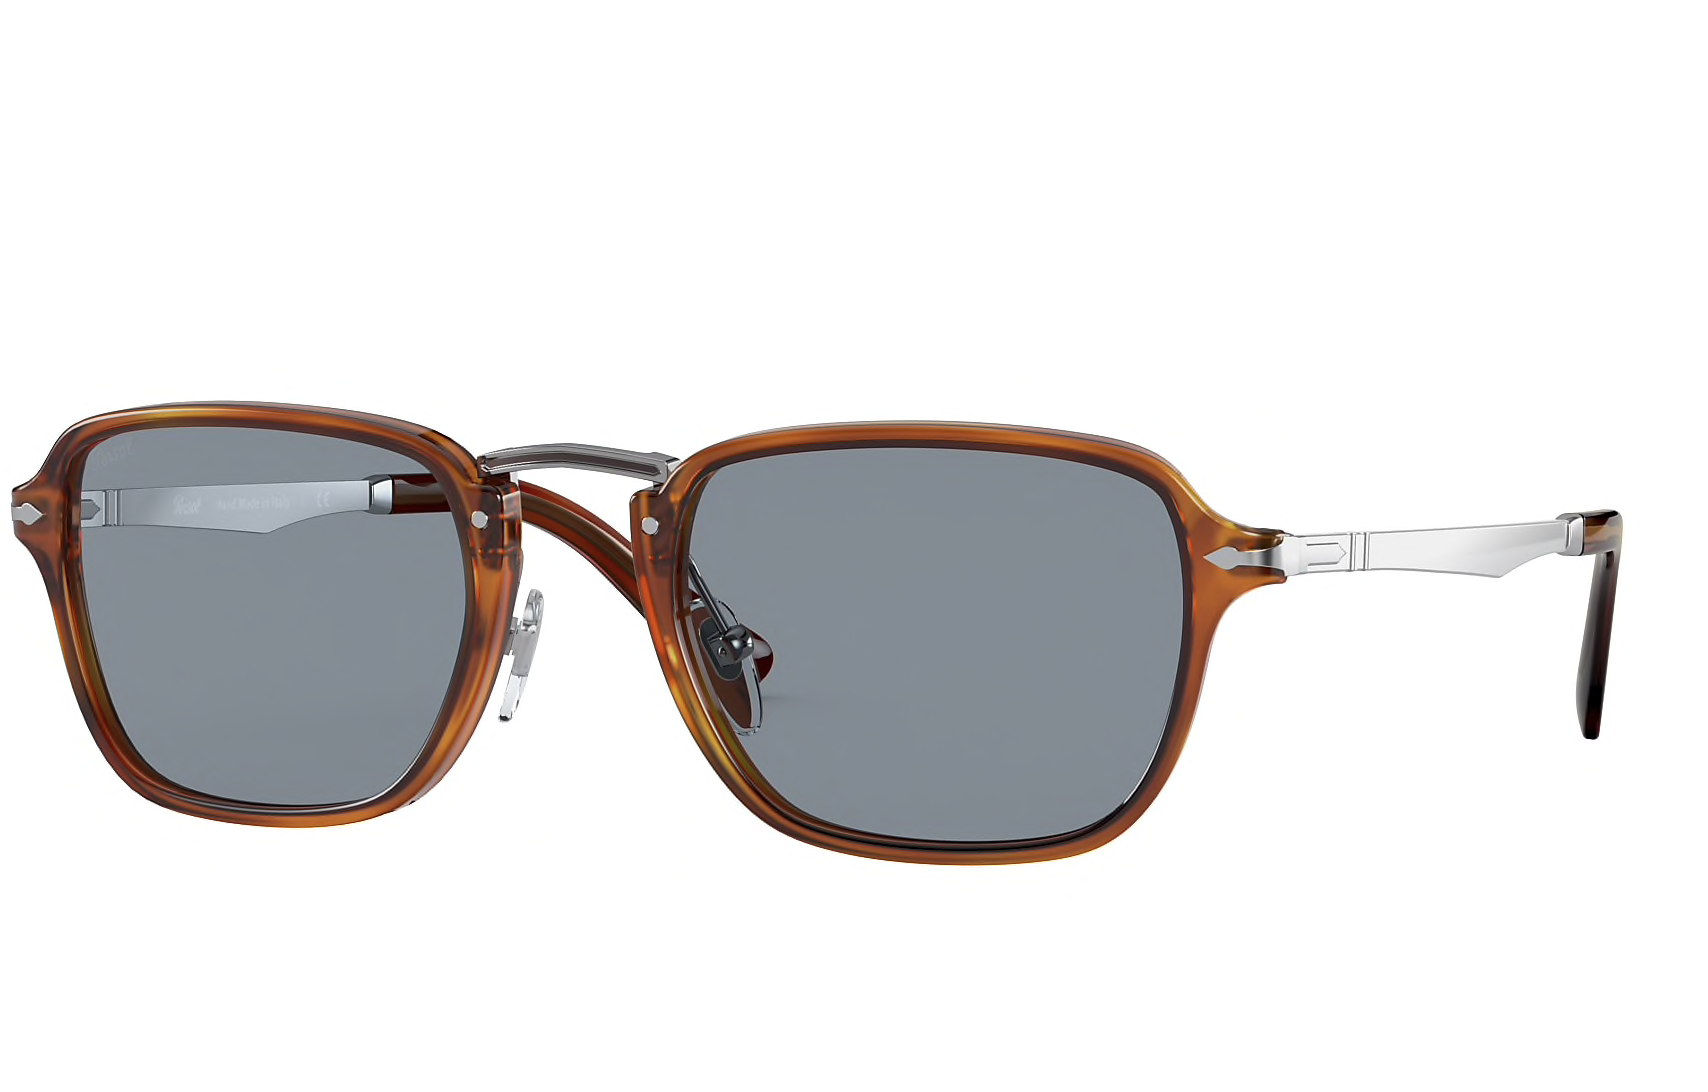 Persol Sunglasses Gifts for Men